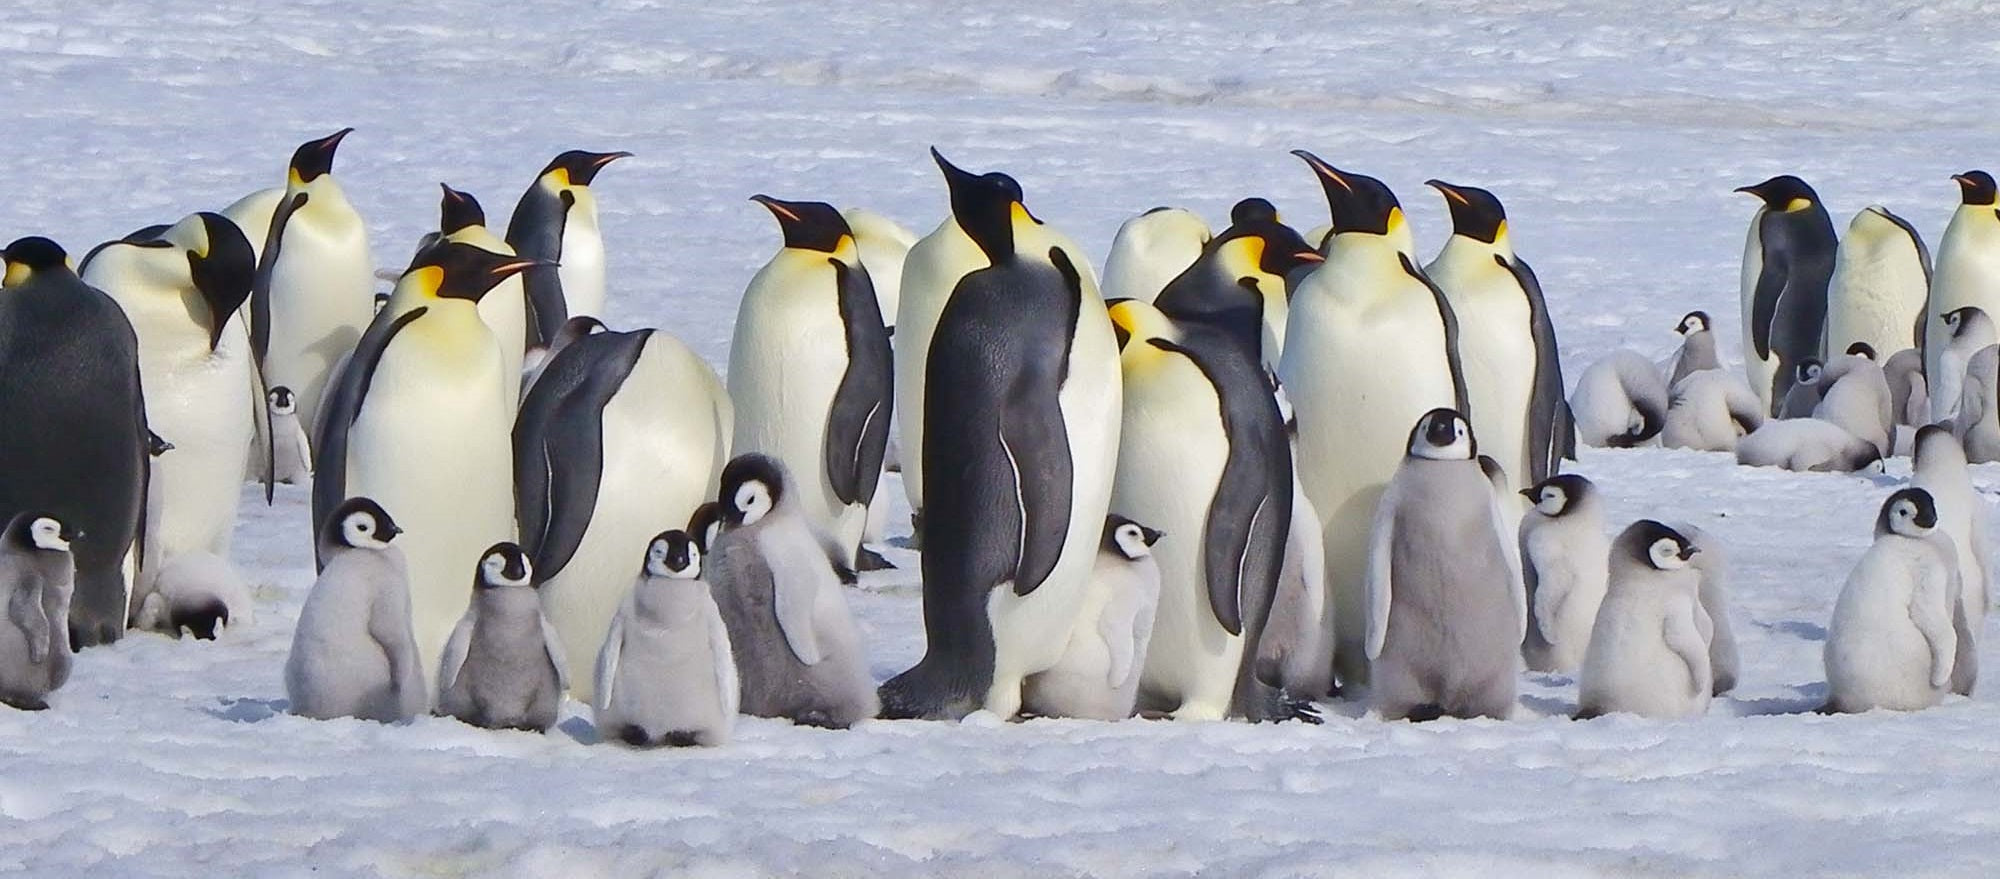 Thousands of Emperor Penguin Chicks Have Been Wiped Out